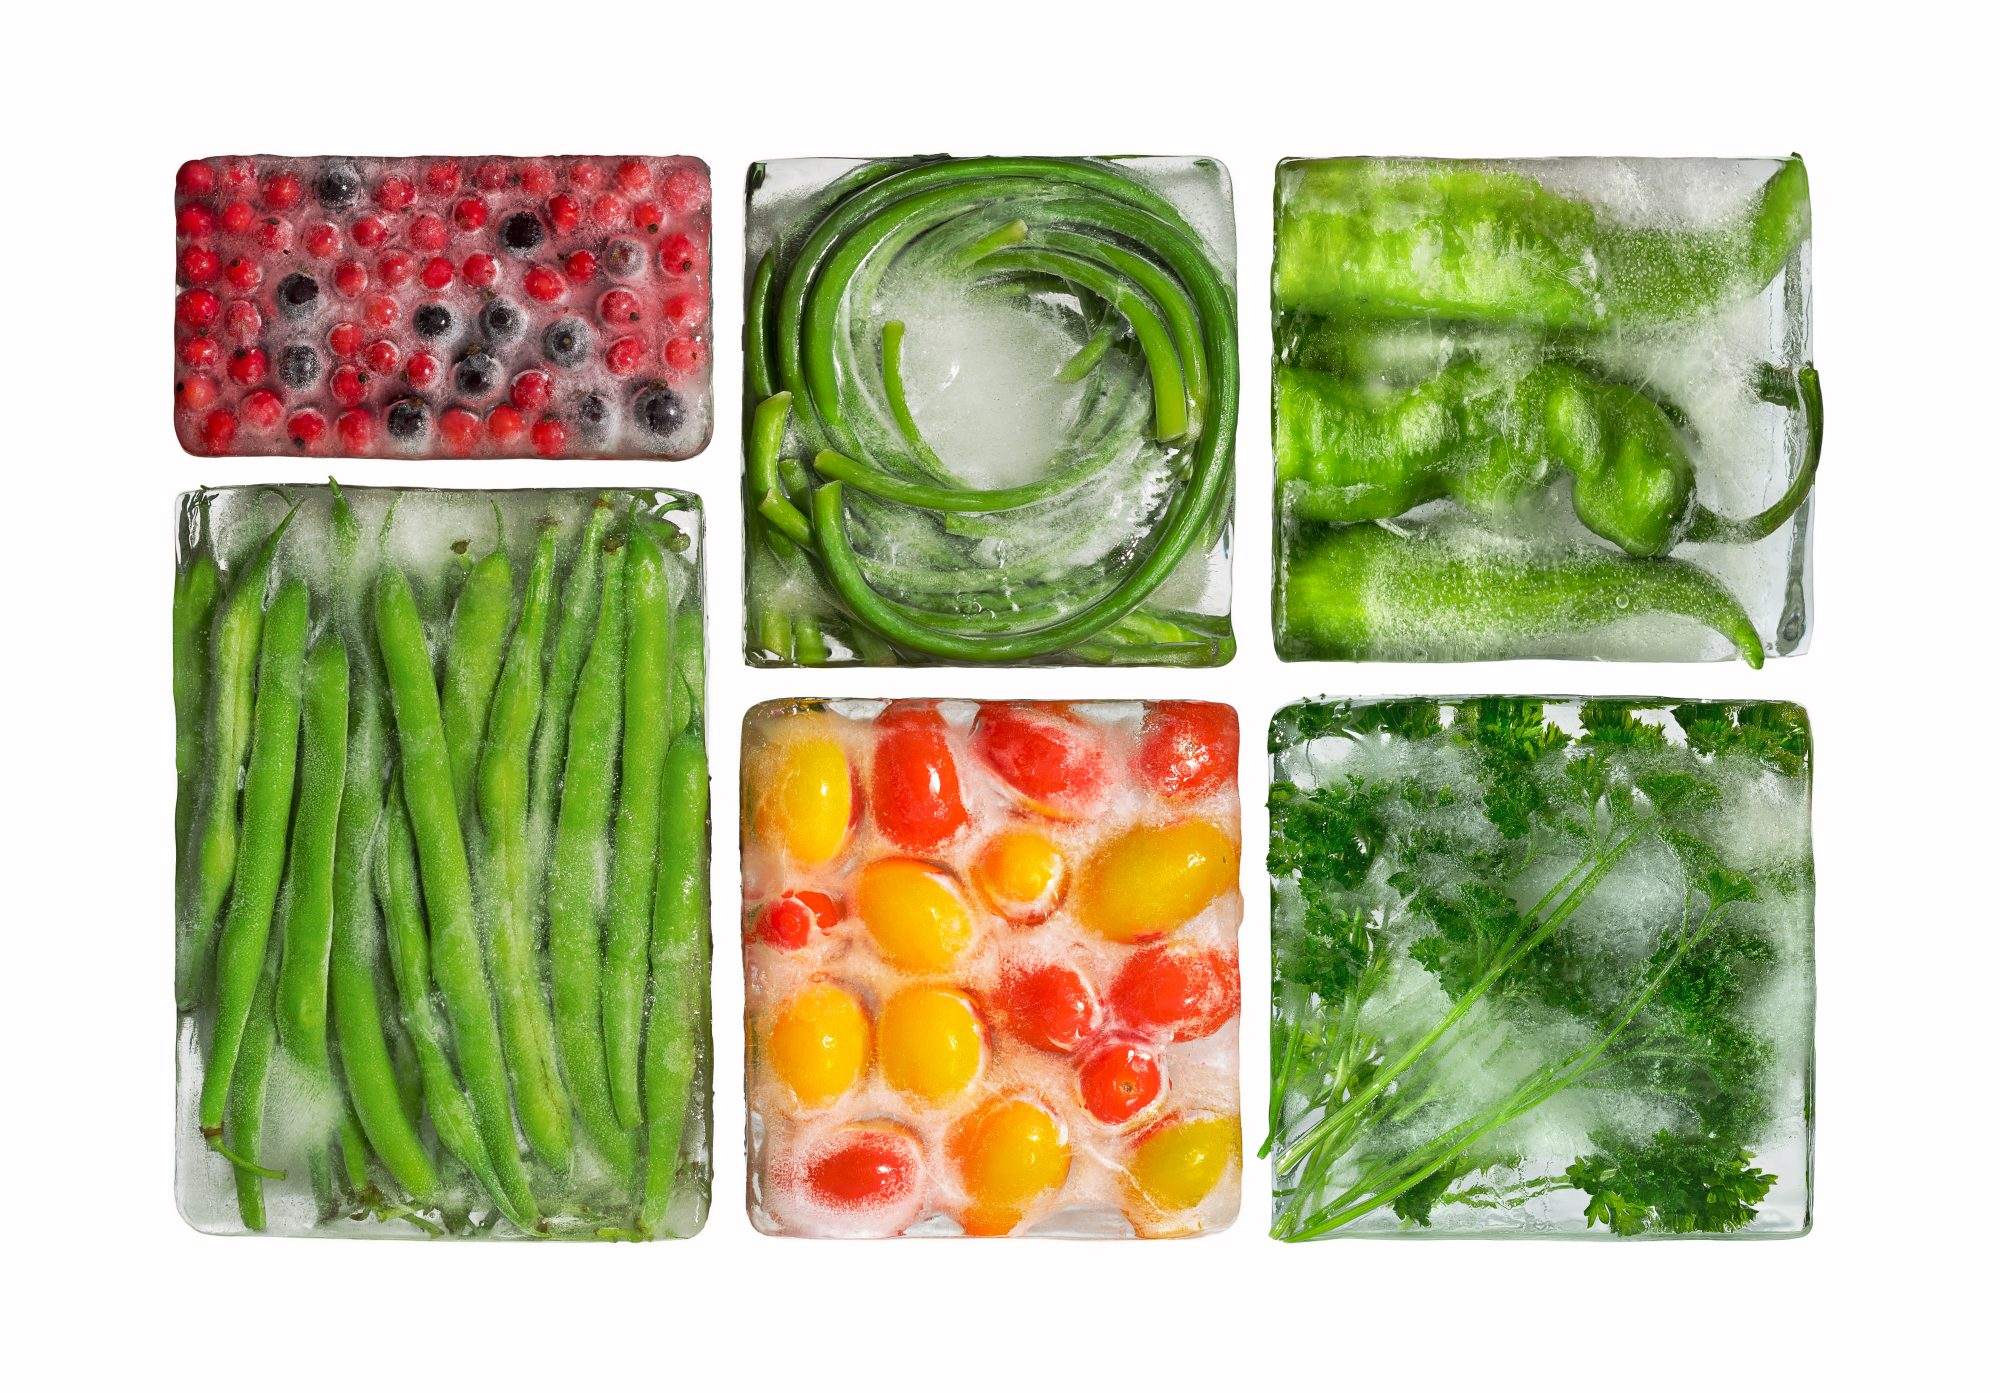 frozen-vegetables-fruits-produce